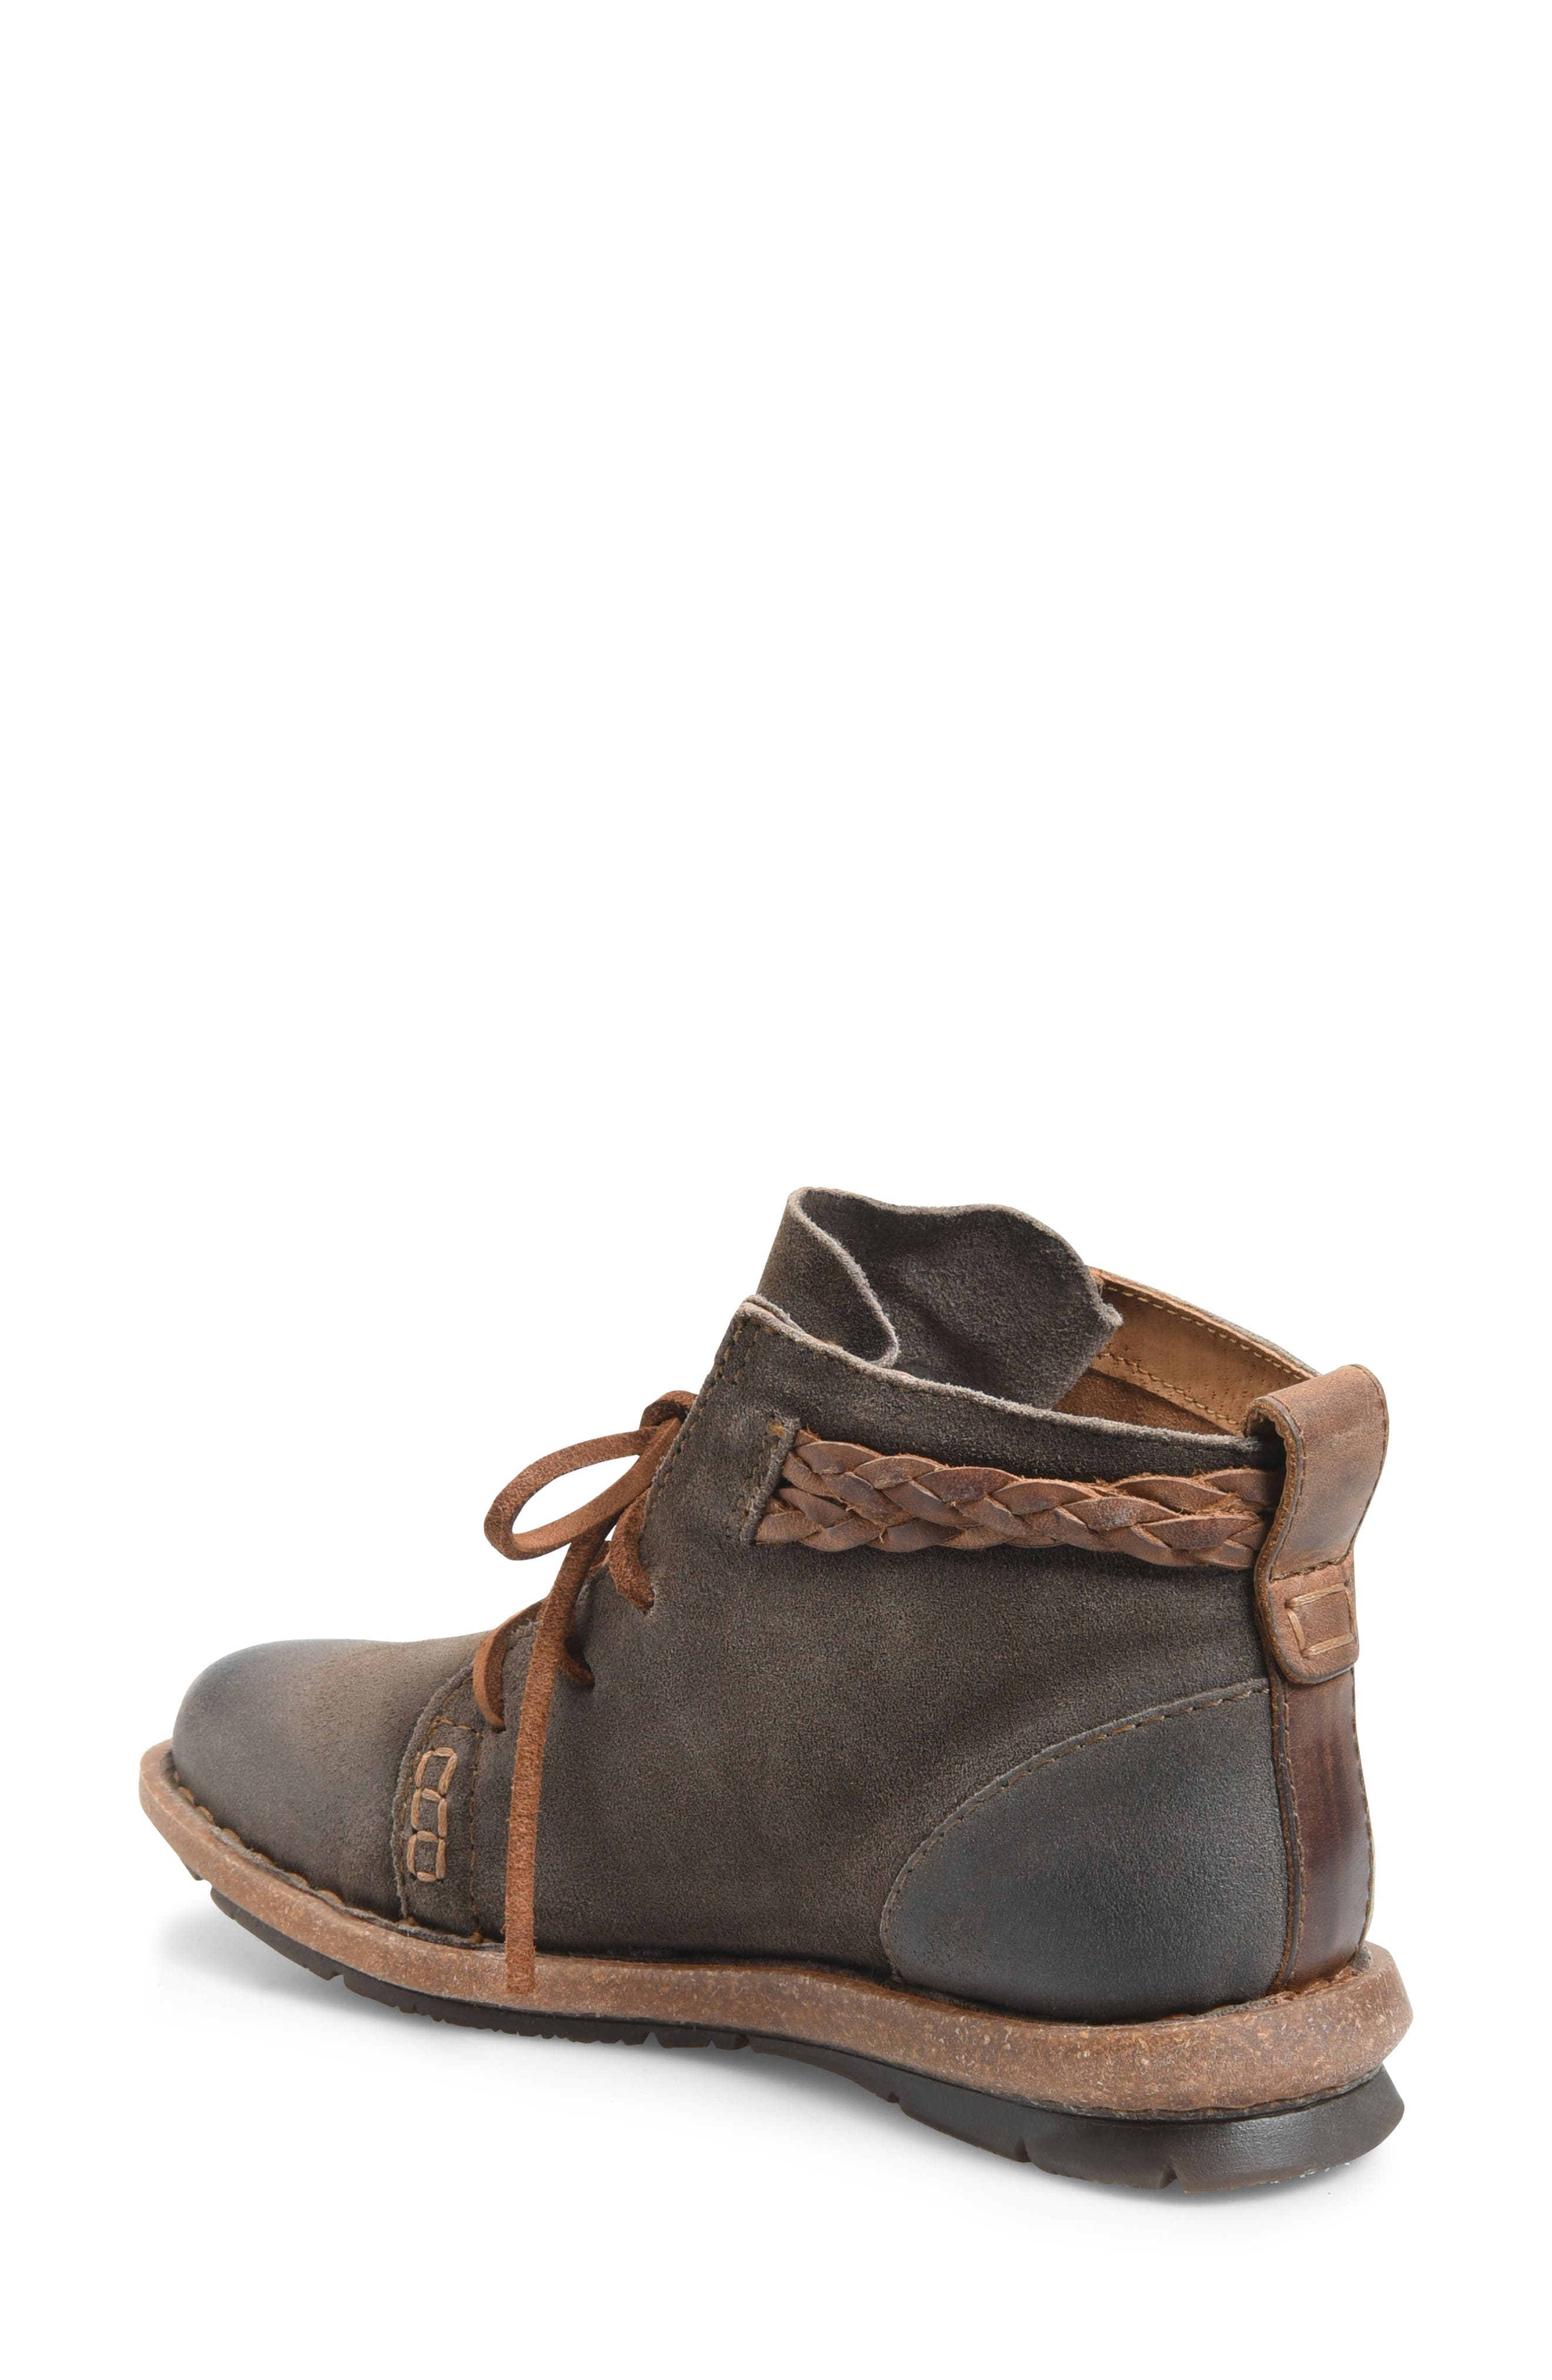 Temple Bootie,                             Alternate thumbnail 2, color,                             TAUPE DISTRESSED LEATHER